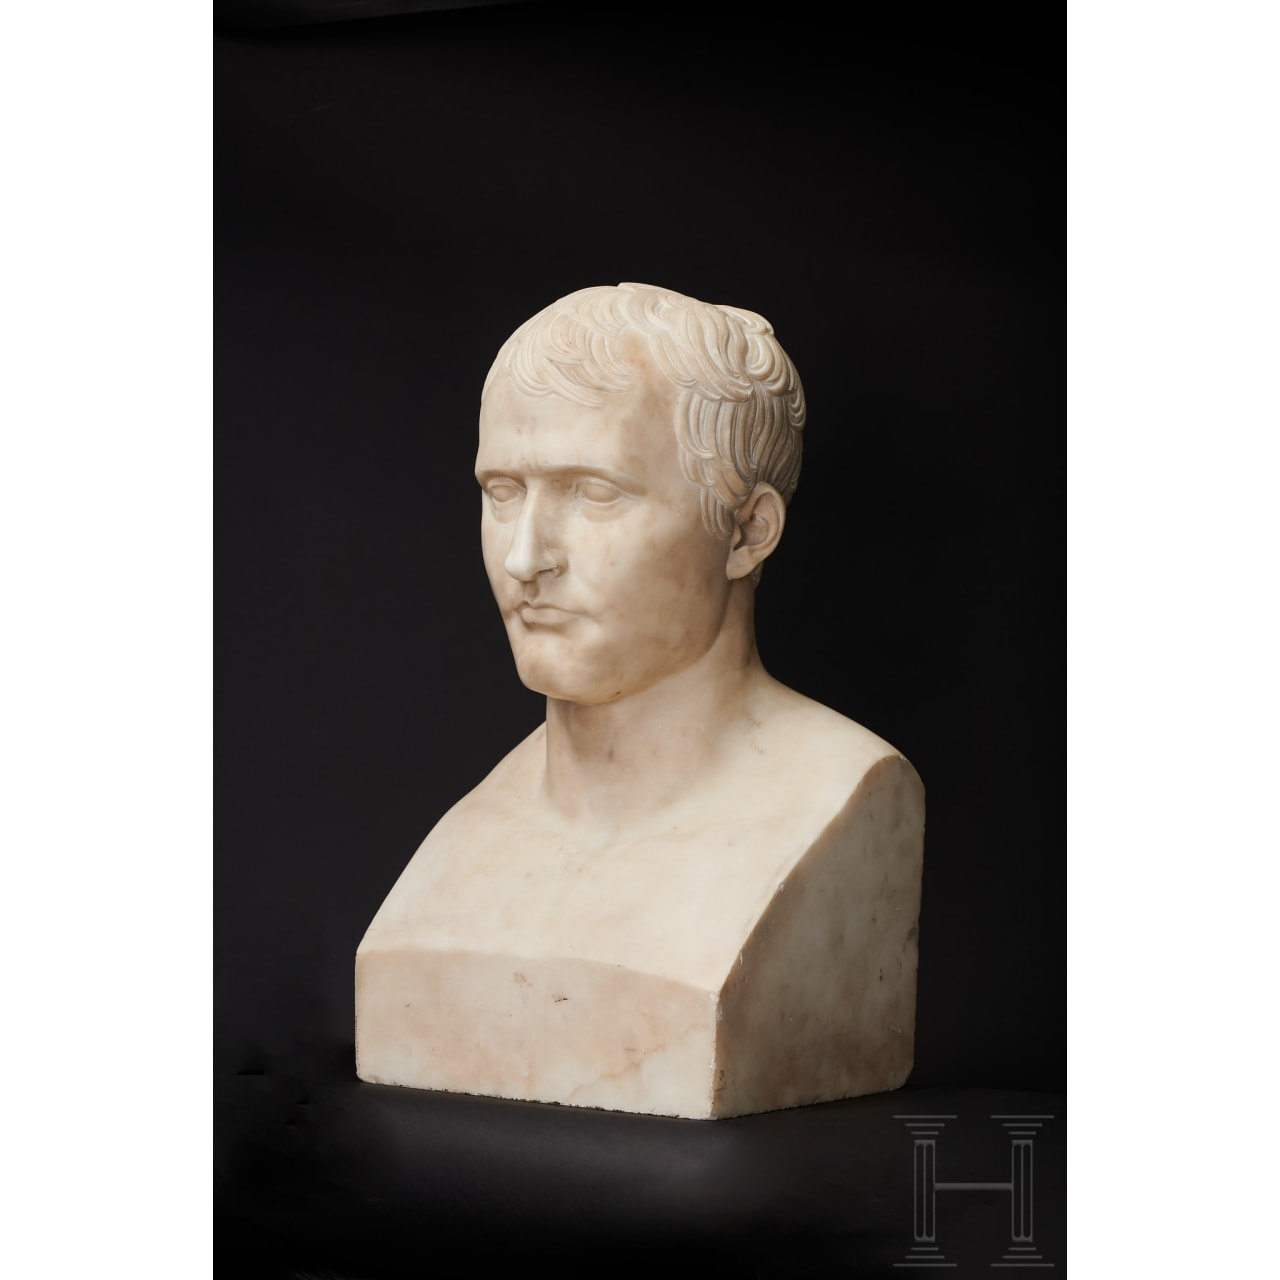 A large marble bust of Napoleon I of France, after Chaudet, 1st half of the 19th century